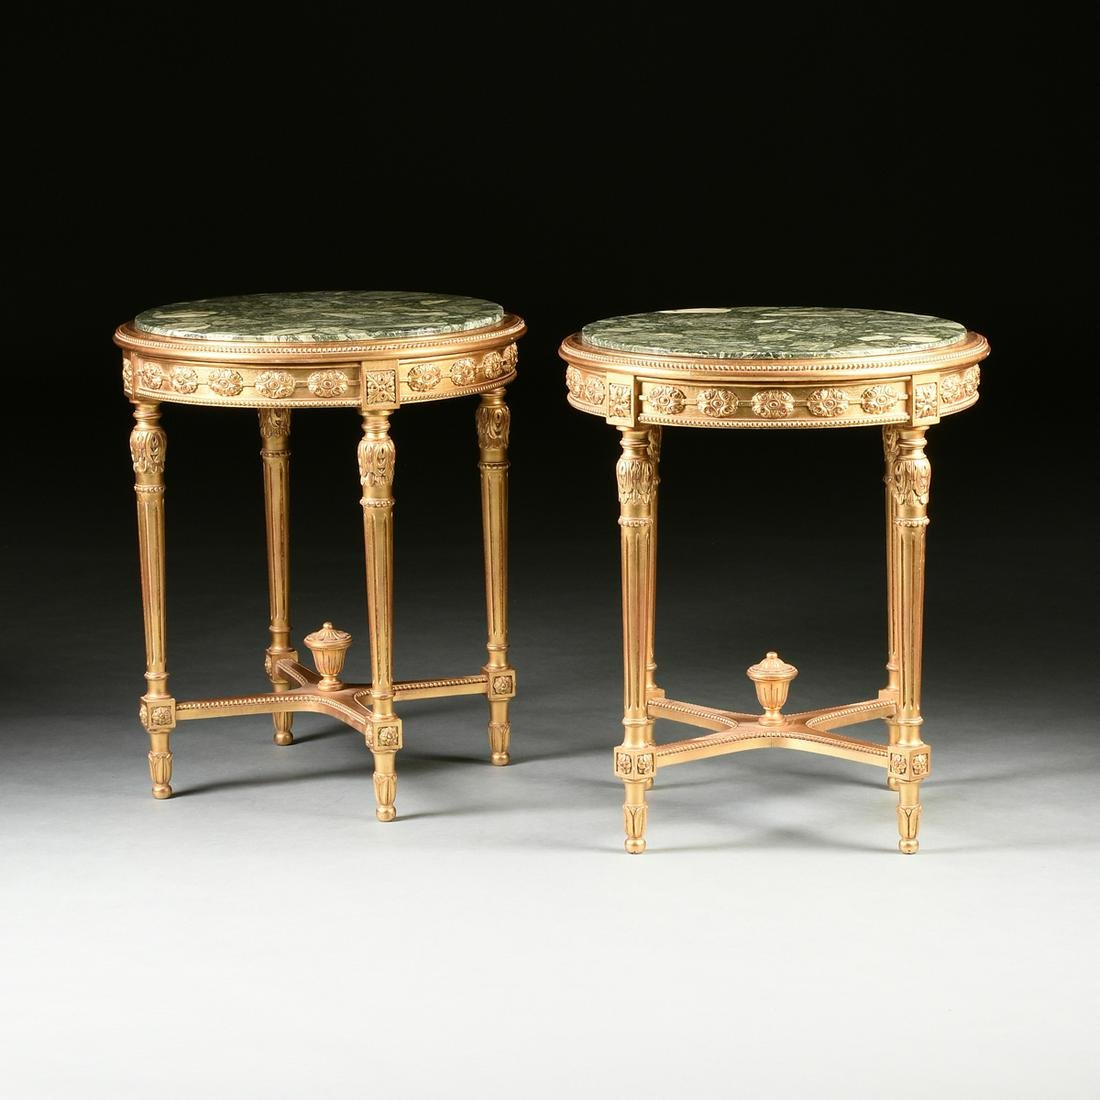 A PAIR OF LOUIS XVI STYLE MARBLE TOPPED AND PARCEL GILT